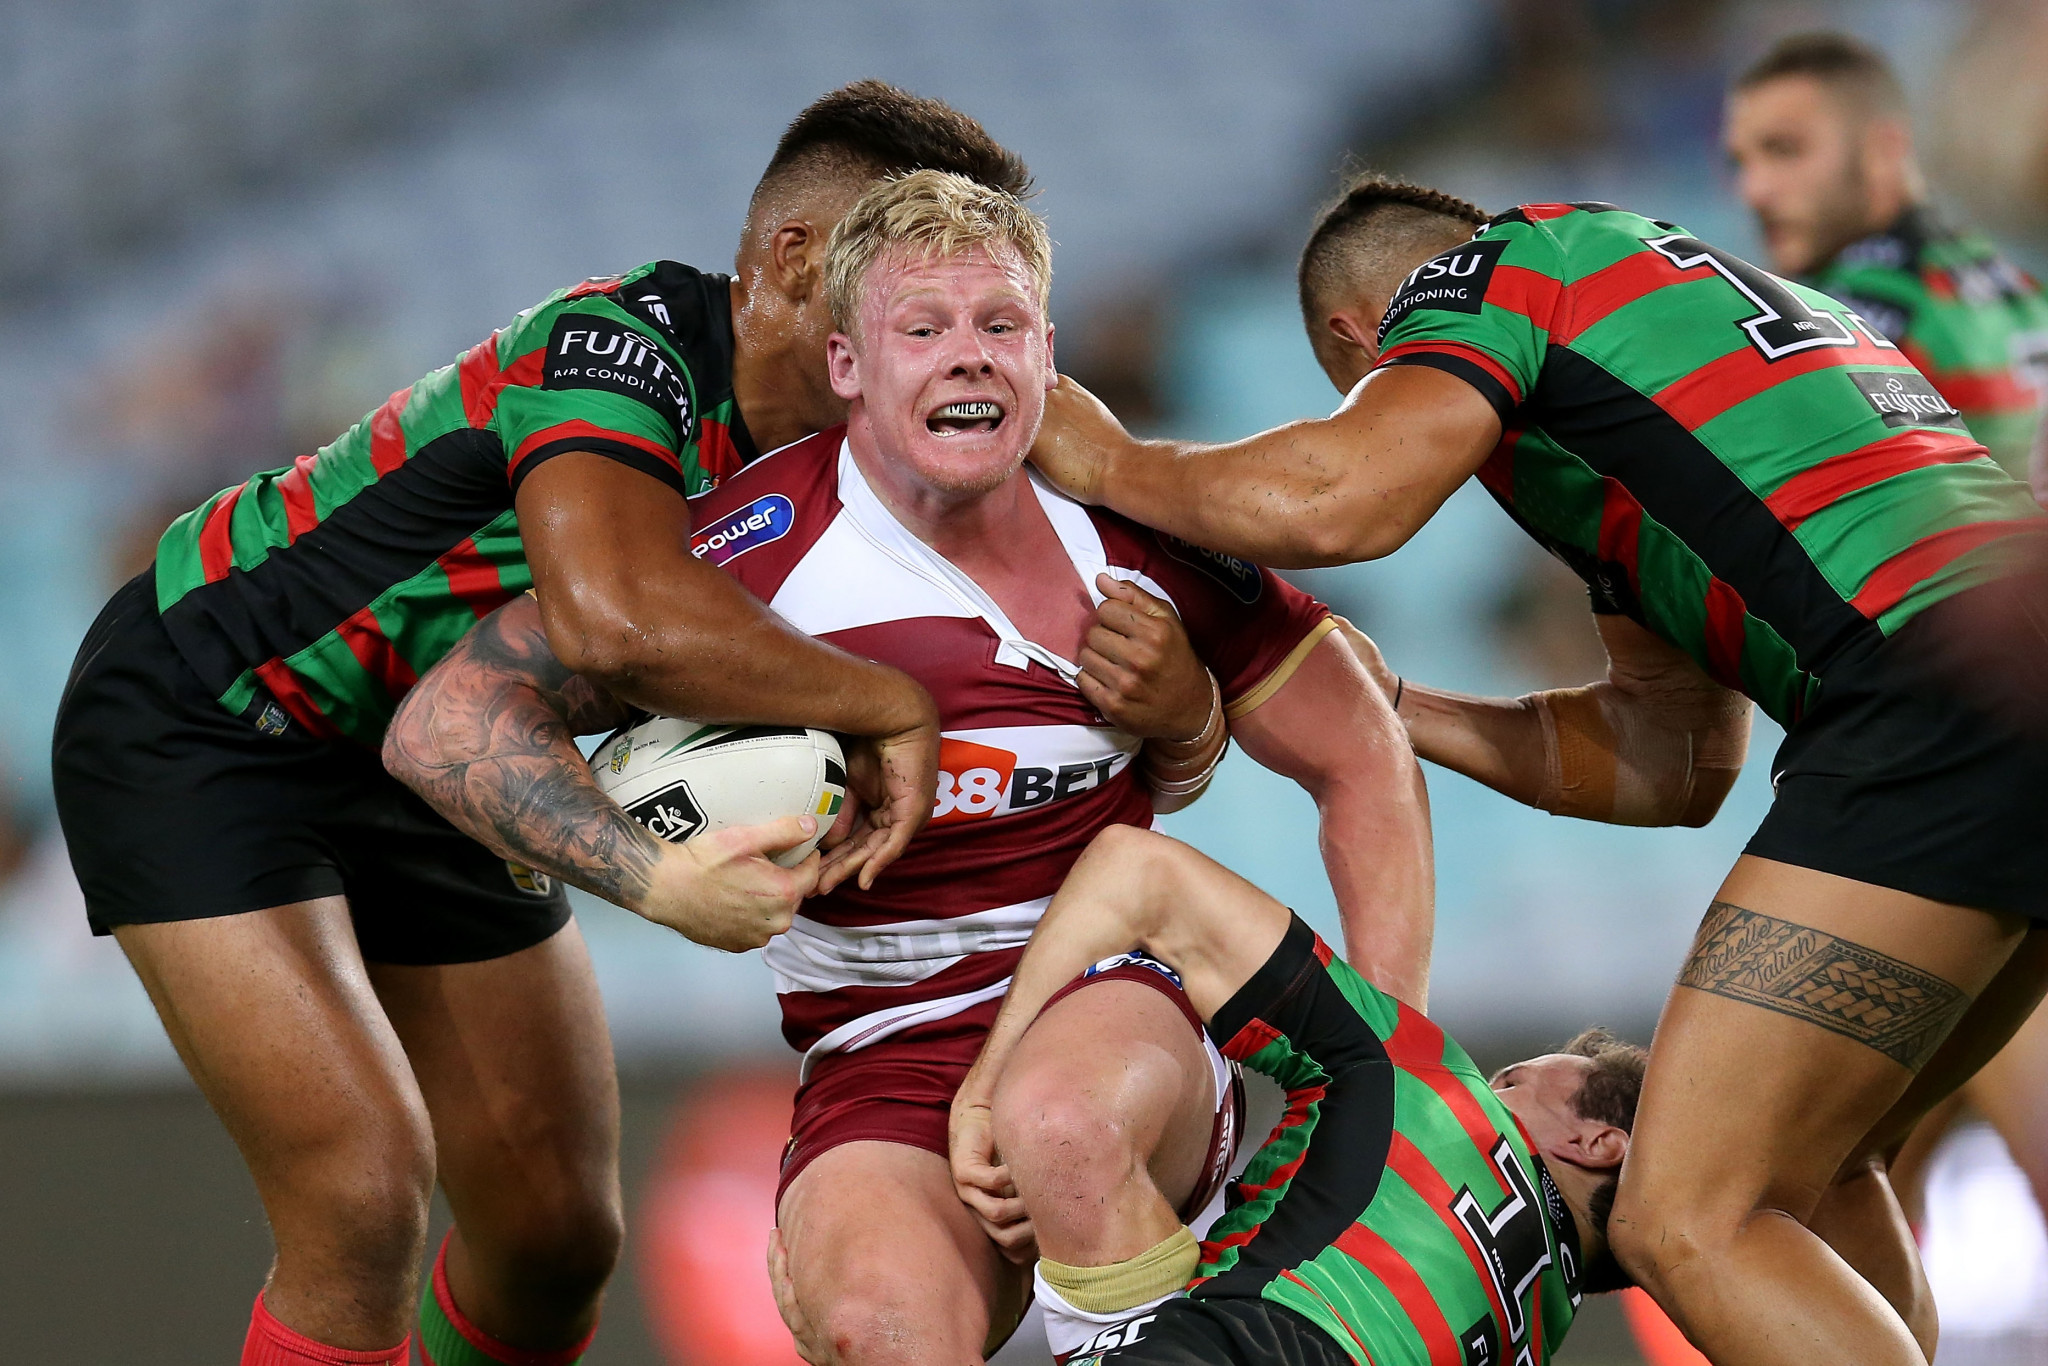 Australian Gabe Hamlin has been provisionally suspended by the Rugby Football League after being charged with a UK Anti-Doping violation ©Getty Images